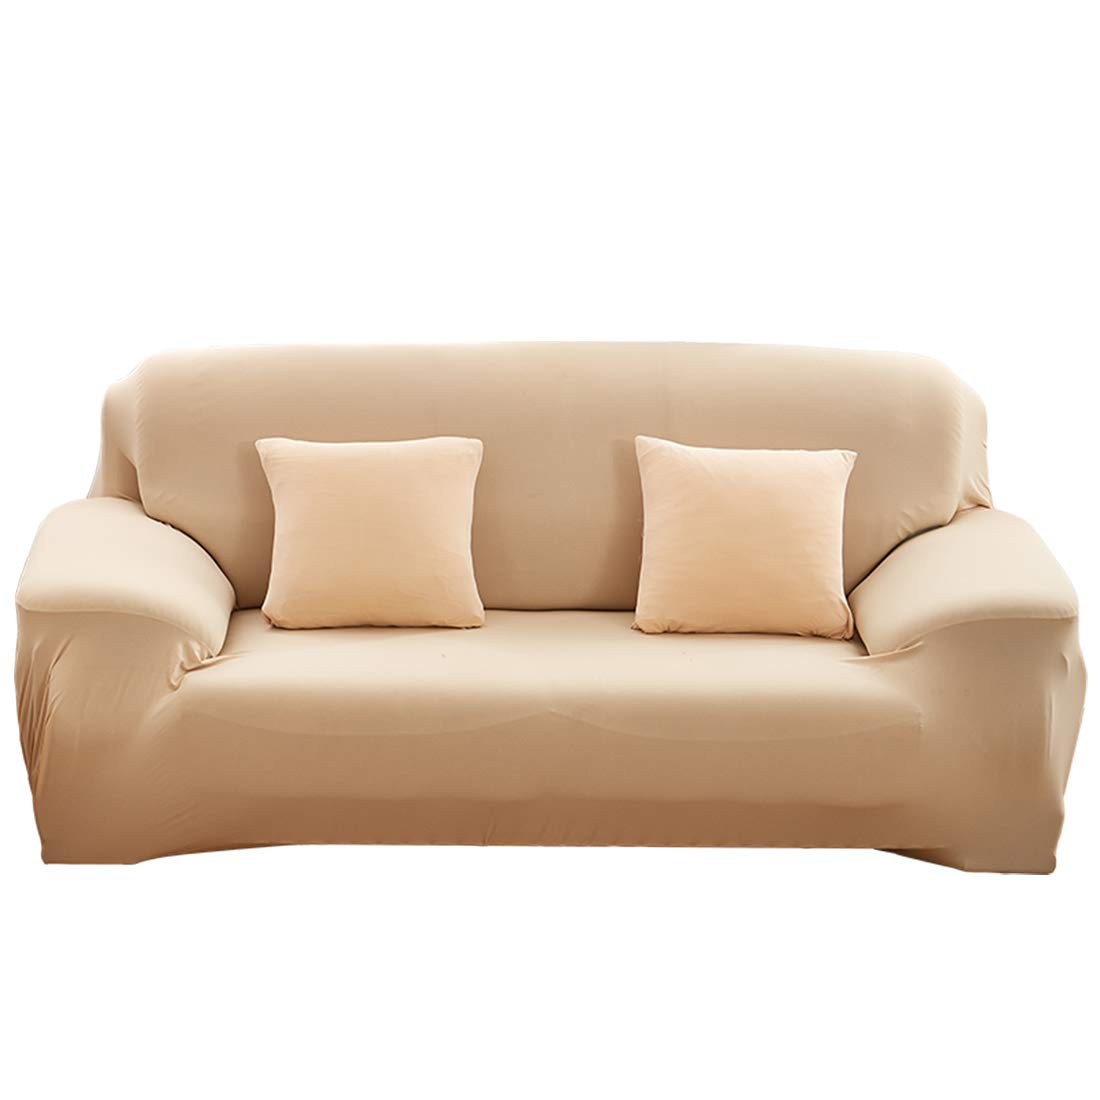 FamyFirst Sofa Cover All-Inclusive Stretch Slipcover Furniture Protector with High Elasticity Skin Friendly Slipcover Suit for Most Sofa 1 Seater Beige